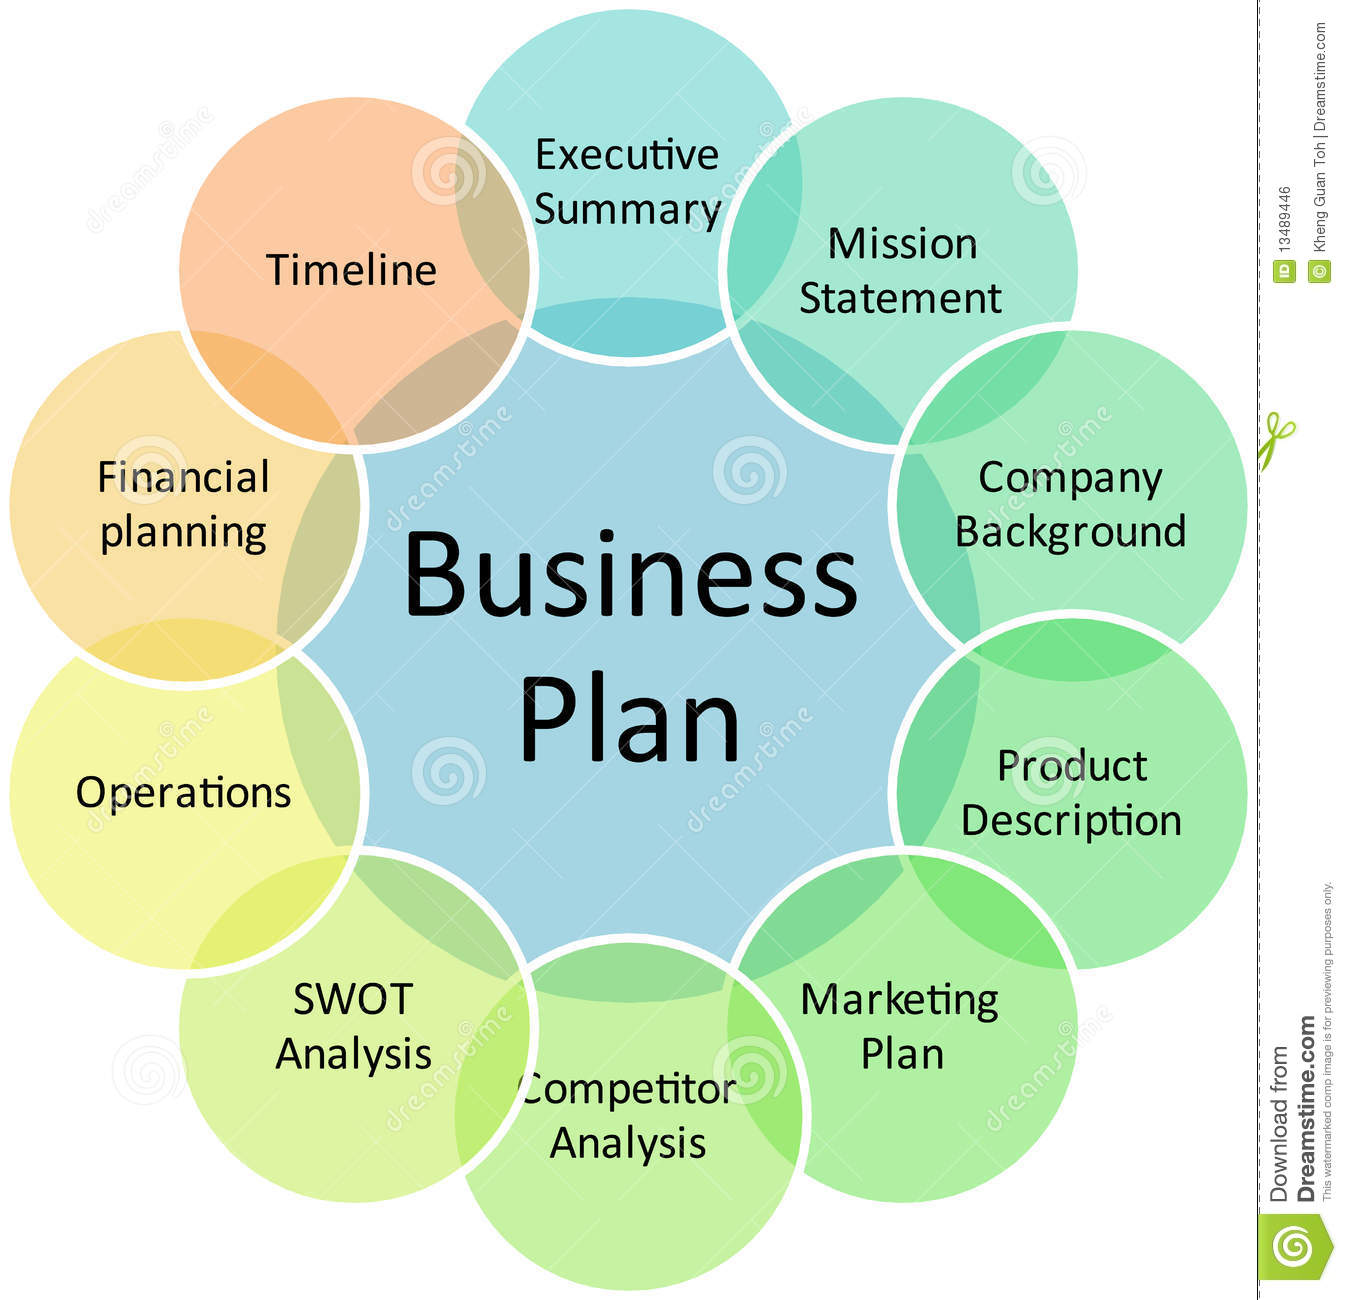 Business Plan Management Diagram Royalty Free Stock Image   Image